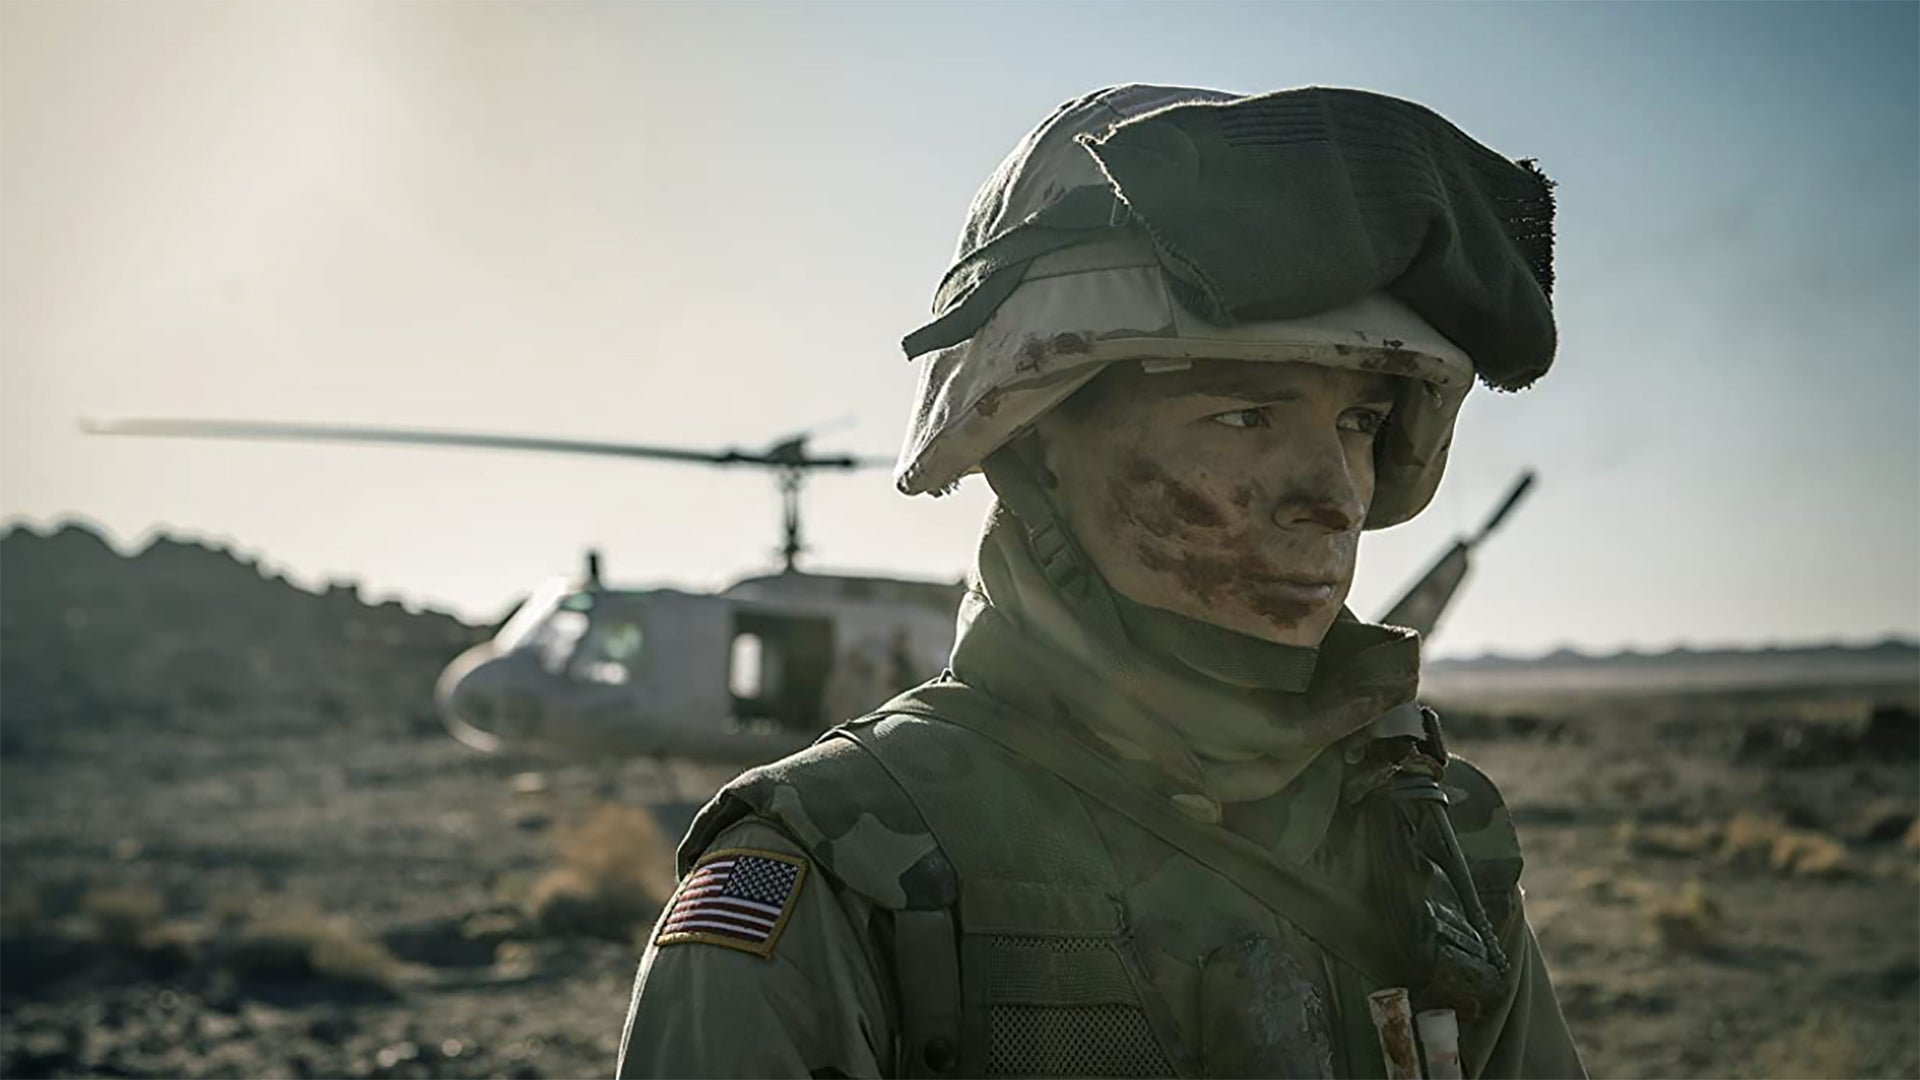 New movie 'Cherry' tells the true(ish) story of an Iraq War vet who became a bank robber